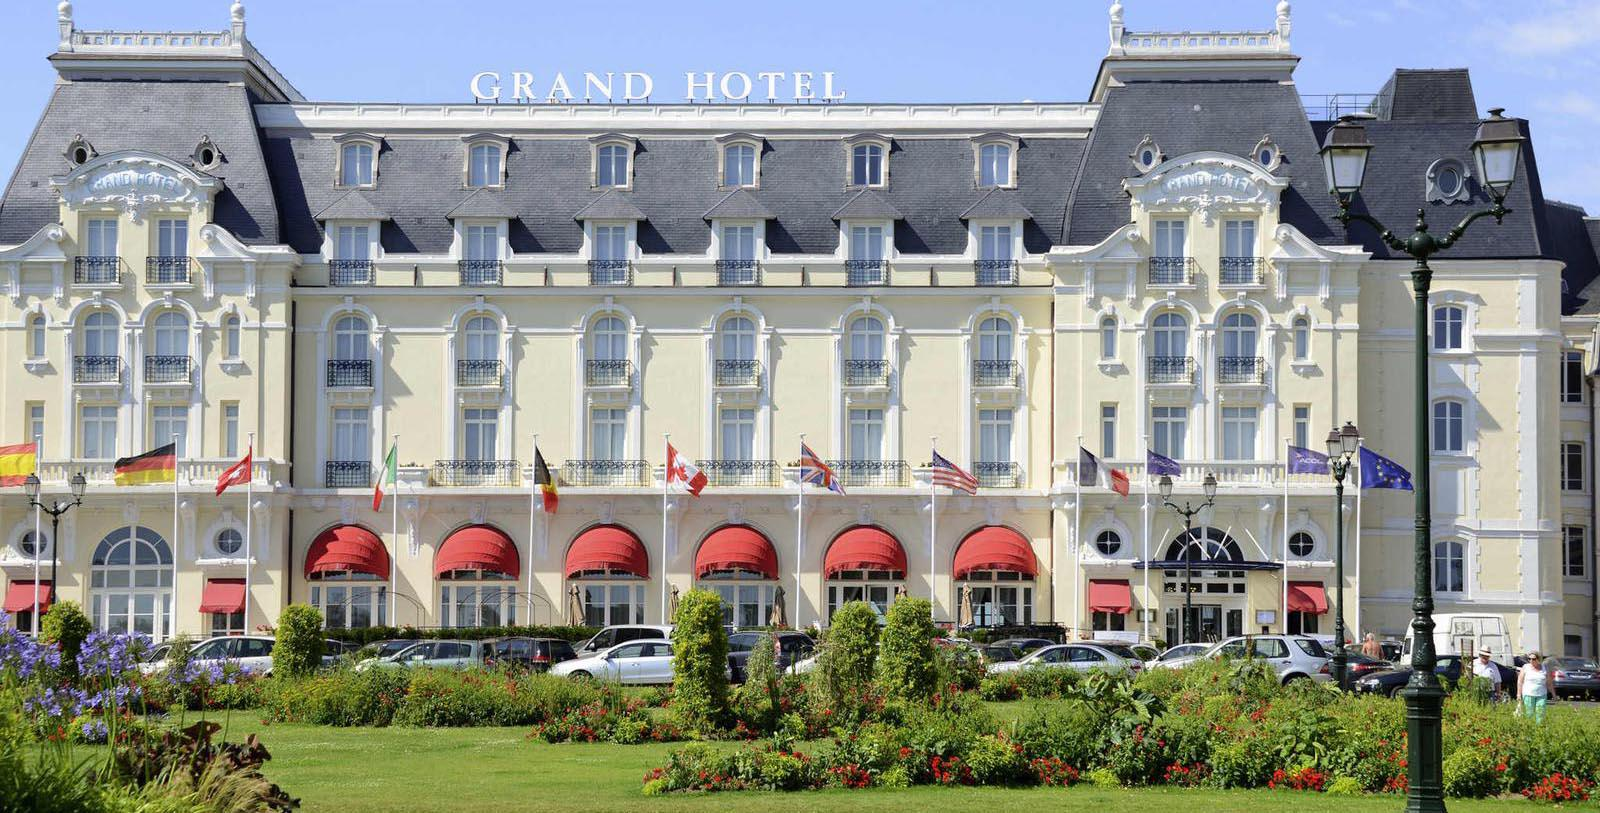 Image of Hotel Exterior Le Grand Hôtel Cabourg - MGallery by Sofitel, 1907, Member of Historic Hotels Worldwide, in Cabourg, France, Special Offers, Discounted Rates, Families, Romantic Escape, Honeymoons, Anniversaries, Reunions